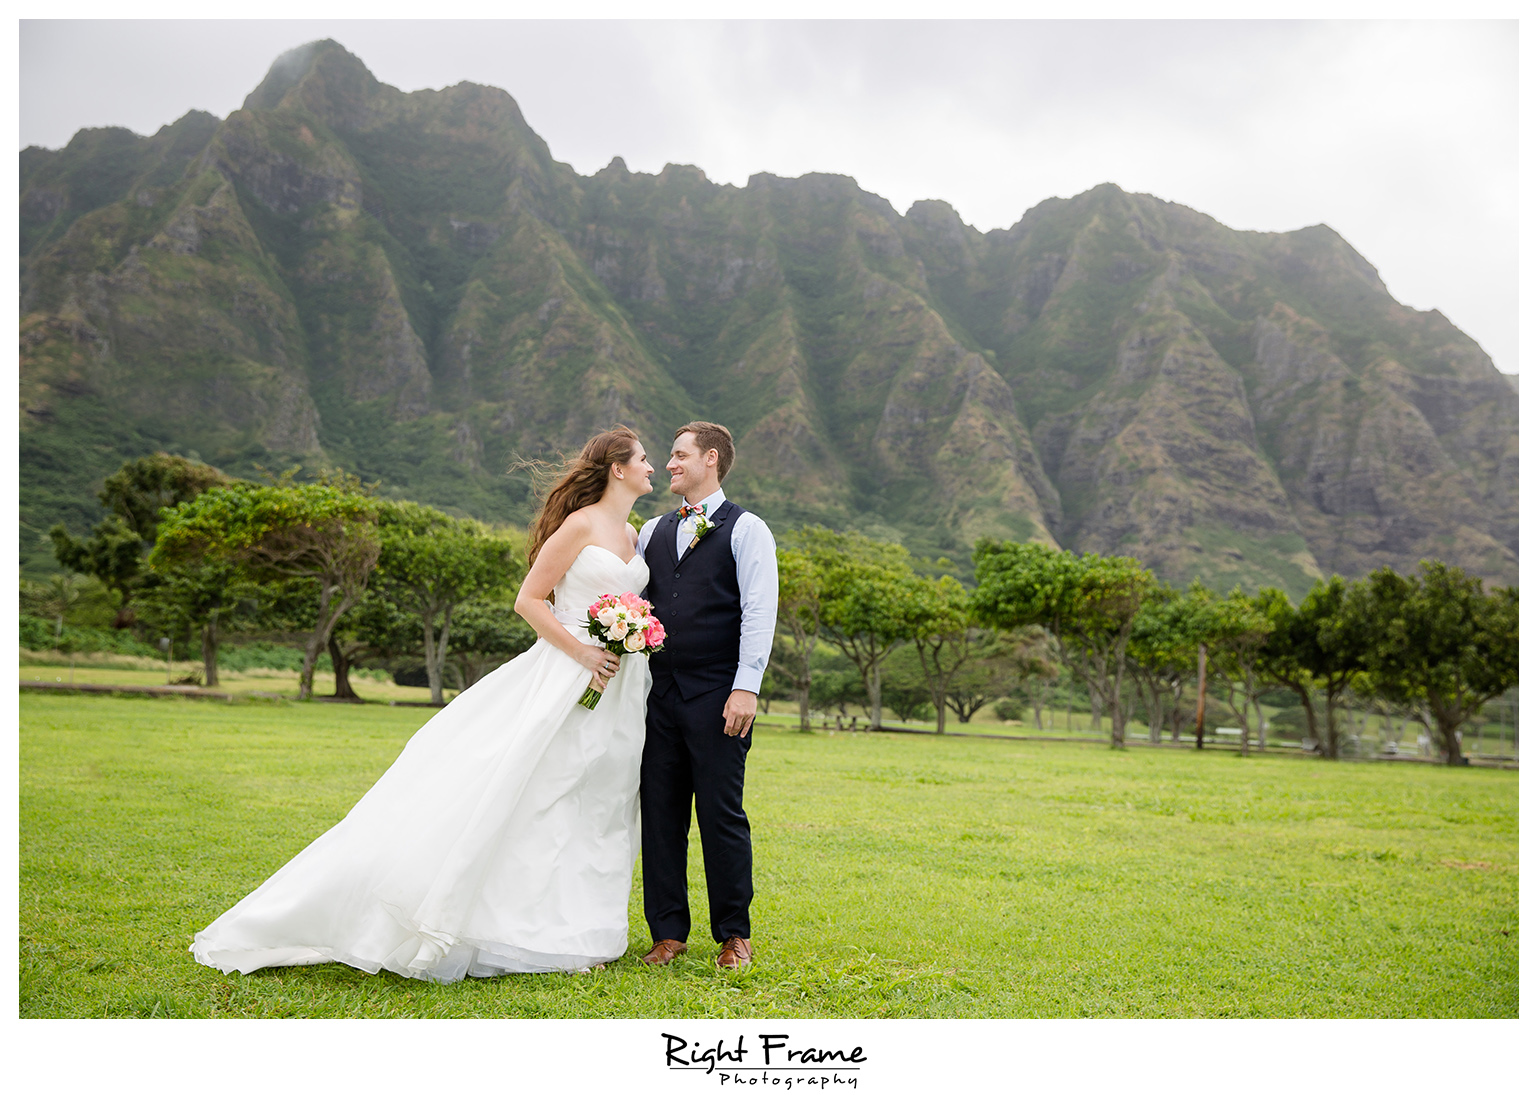 Hawaii Kualoa Ranch Wedding At Paliku Gardens By Right Frame Photography